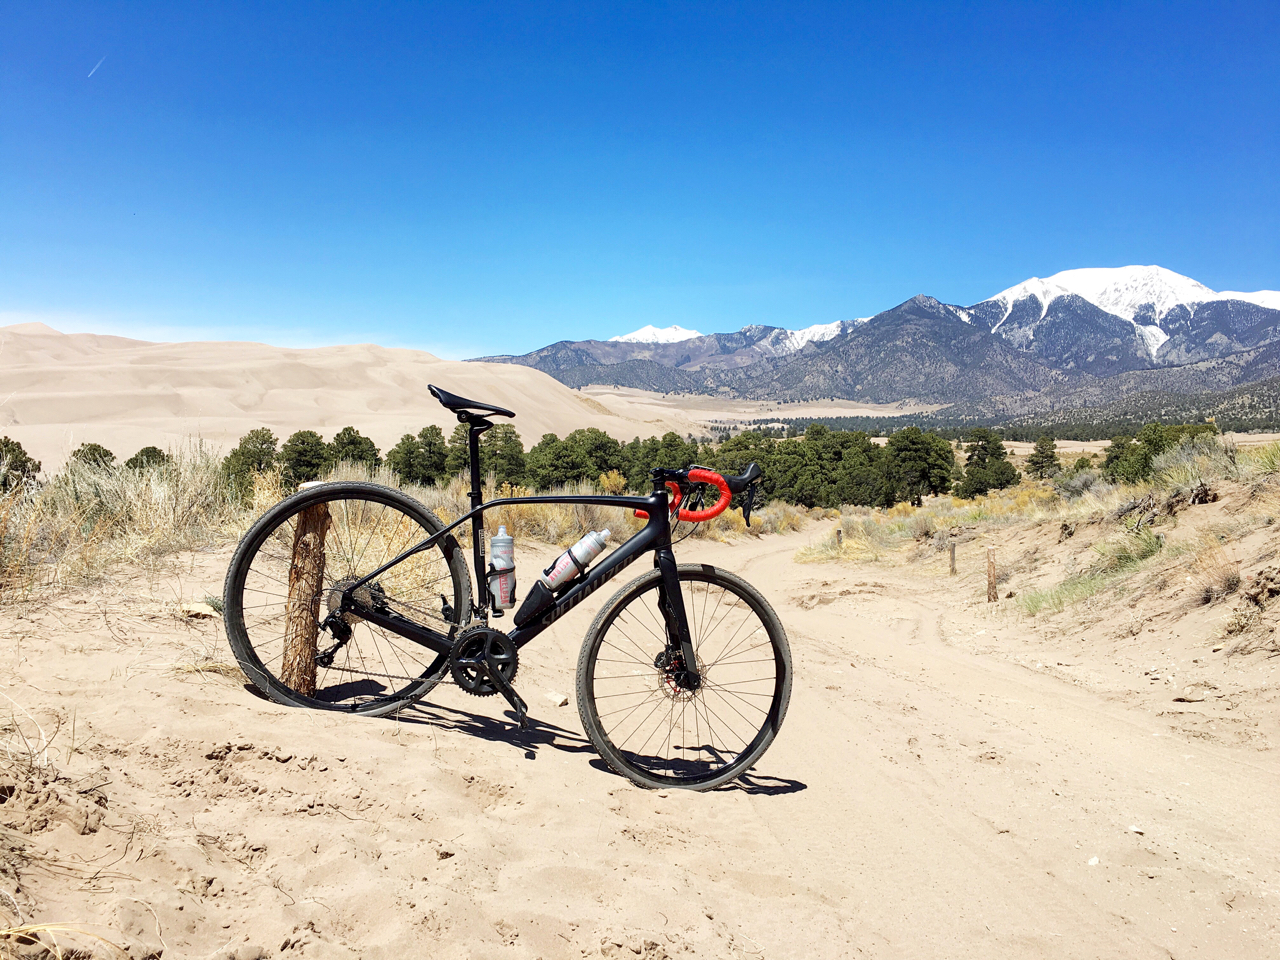 Getting Loose at Great Sand Dunes National Park in Colorado.